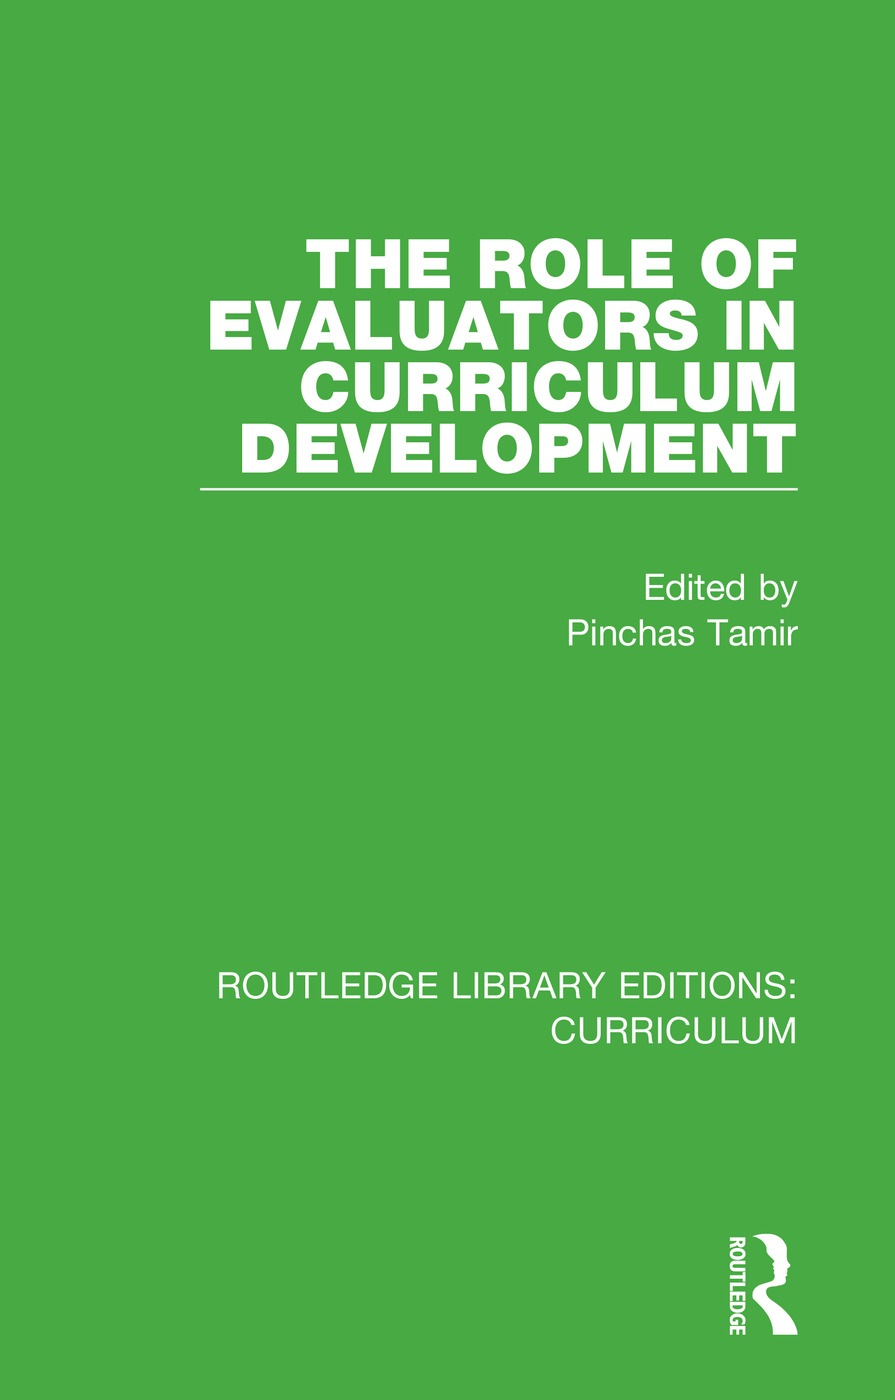 The Role of Evaluators in Curriculum Development book cover